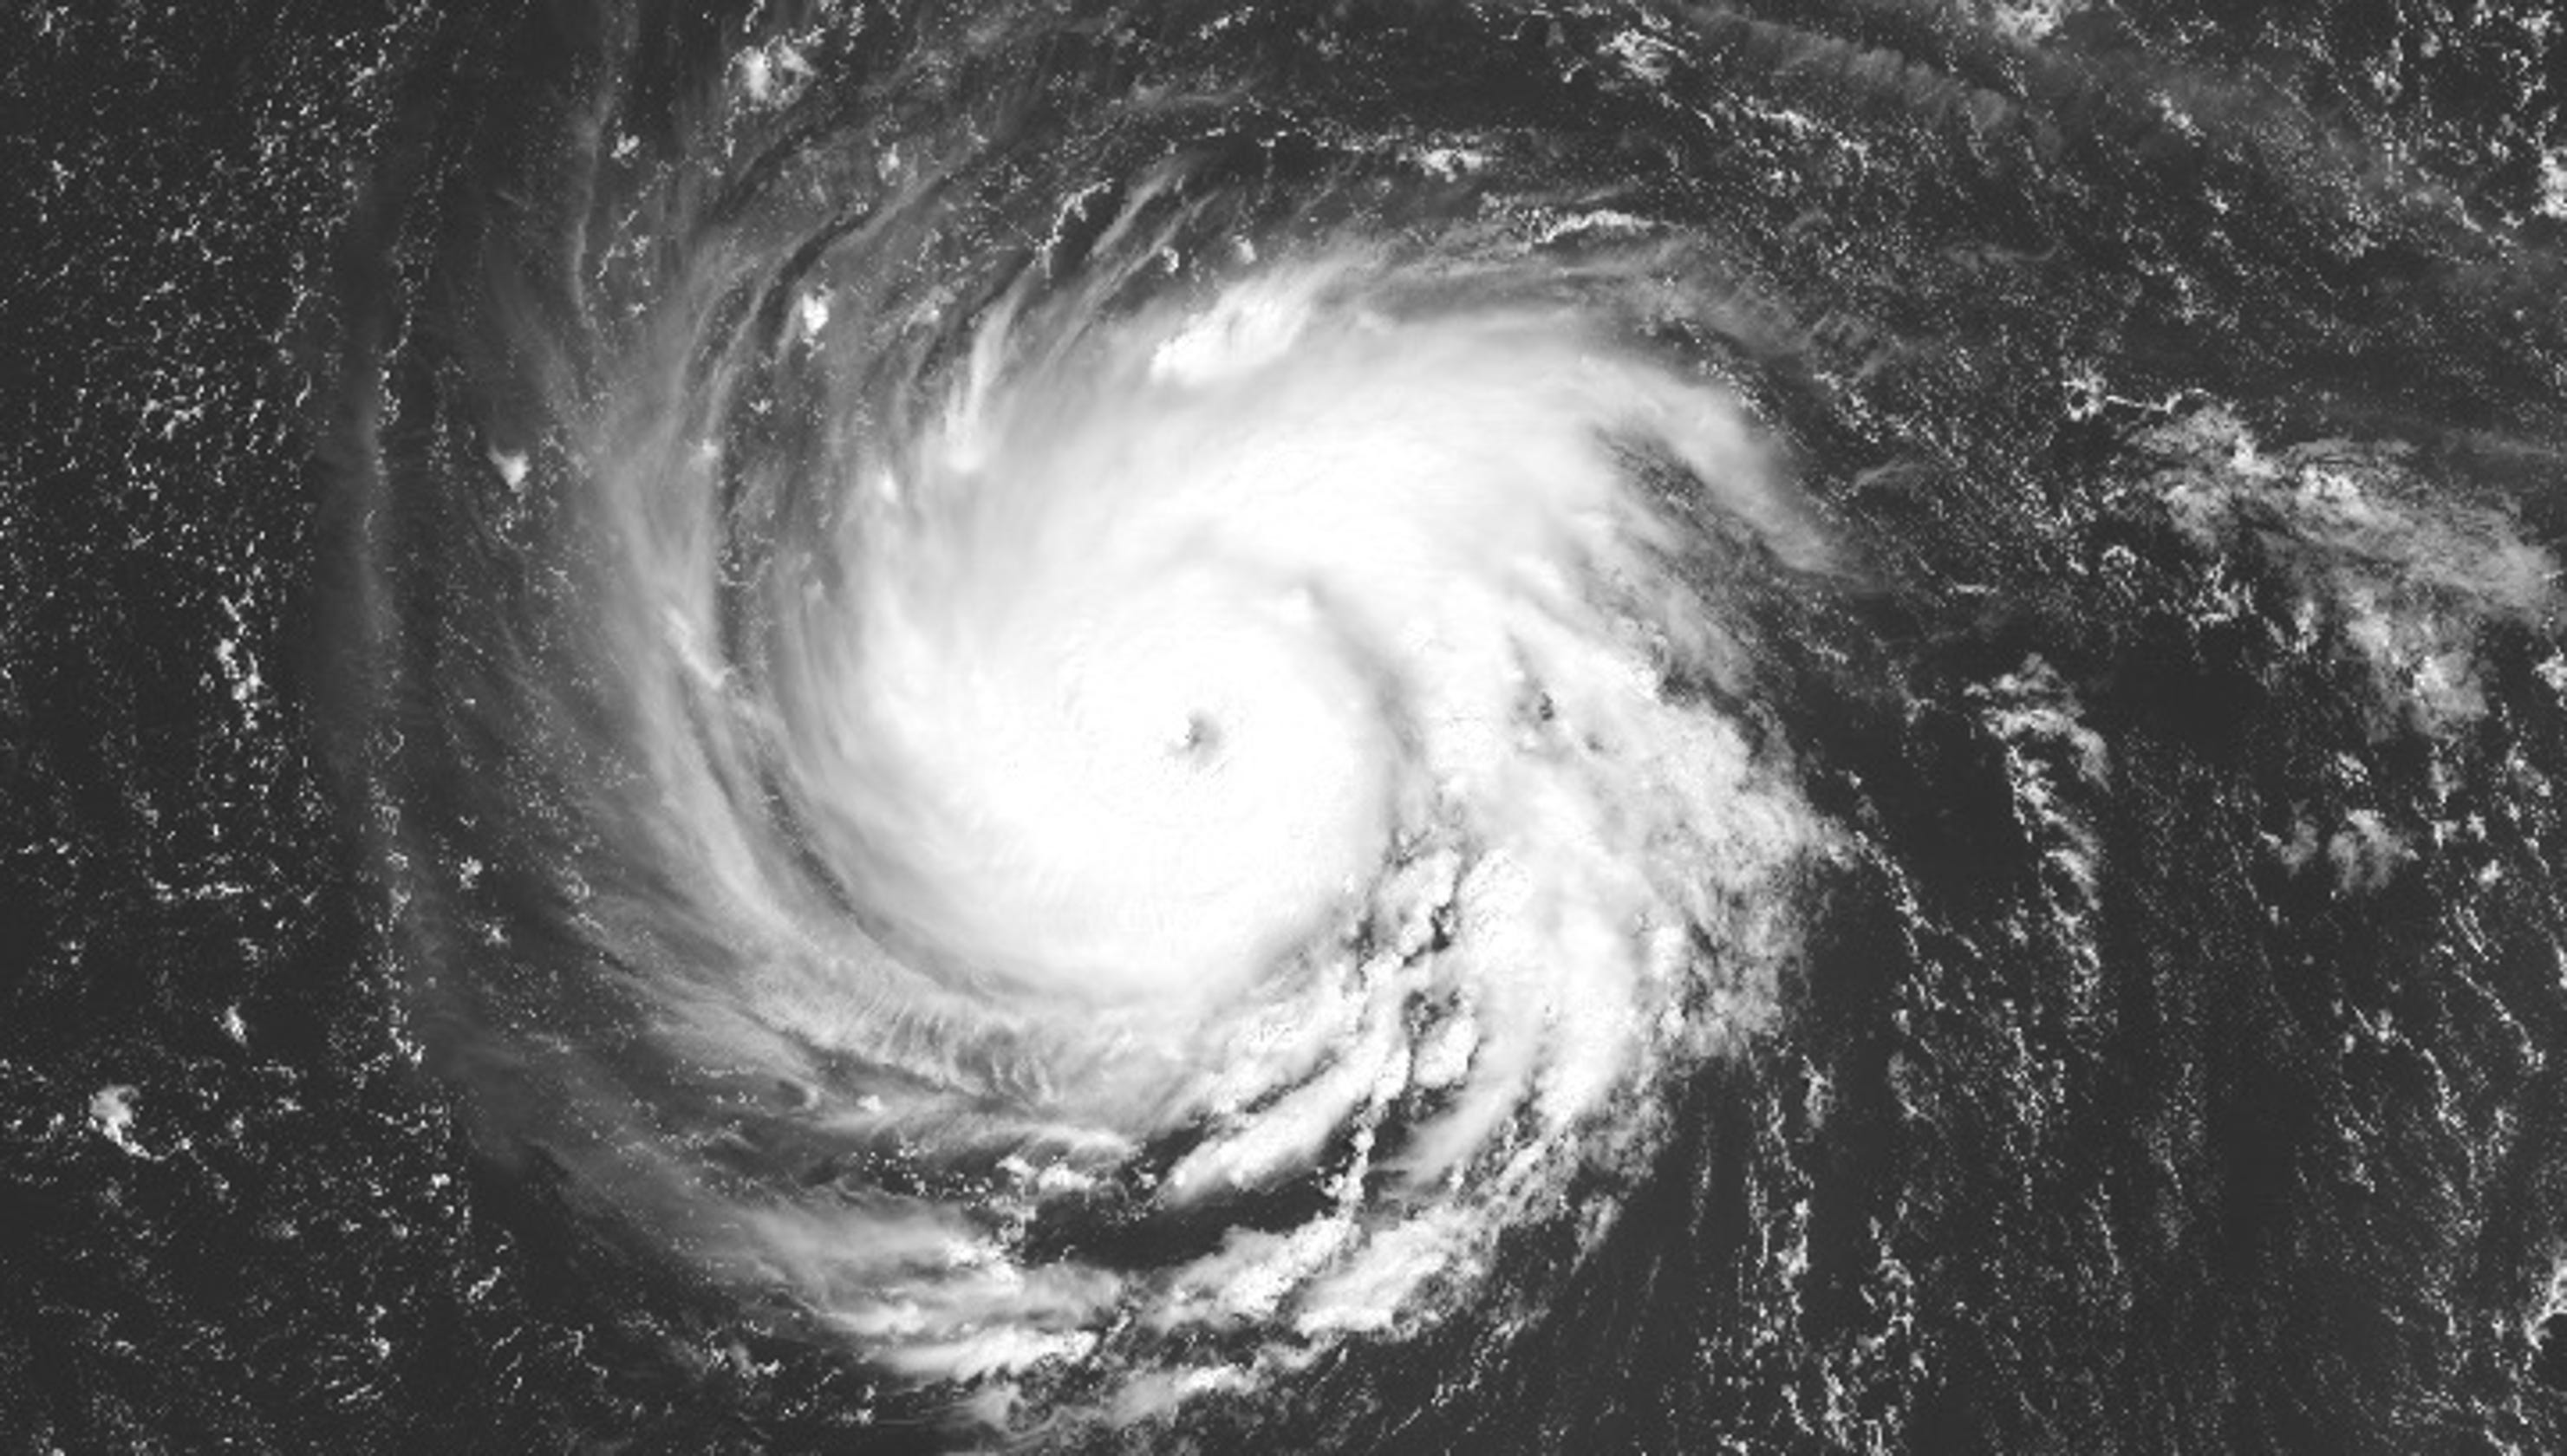 70d9a32f If Hurricane Florence hits as a Category 4 storm, the toll could be  devastating. Here's what could happen.